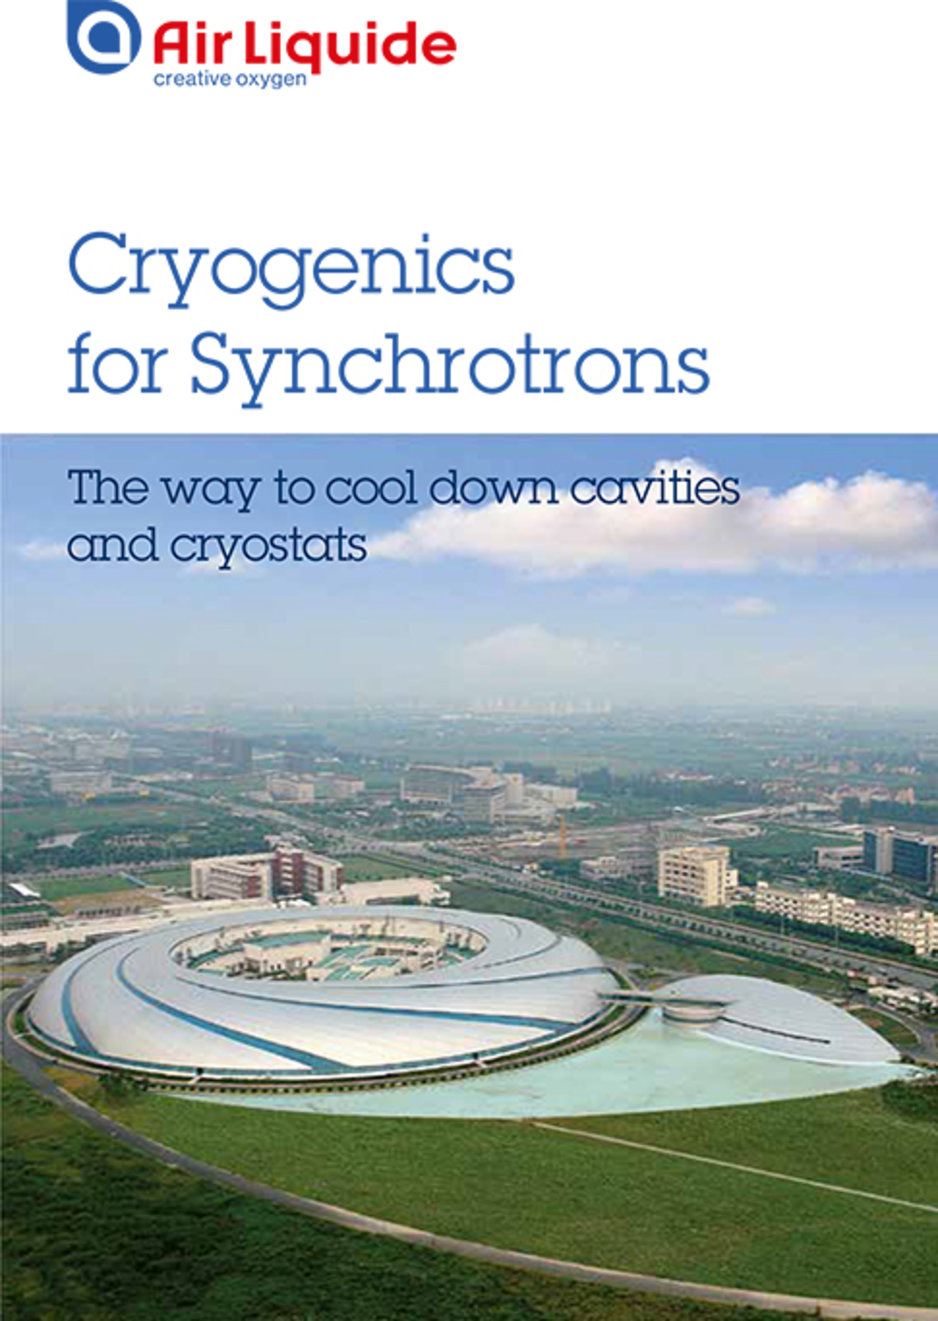 cryogenics for synchrotrons brochure cover